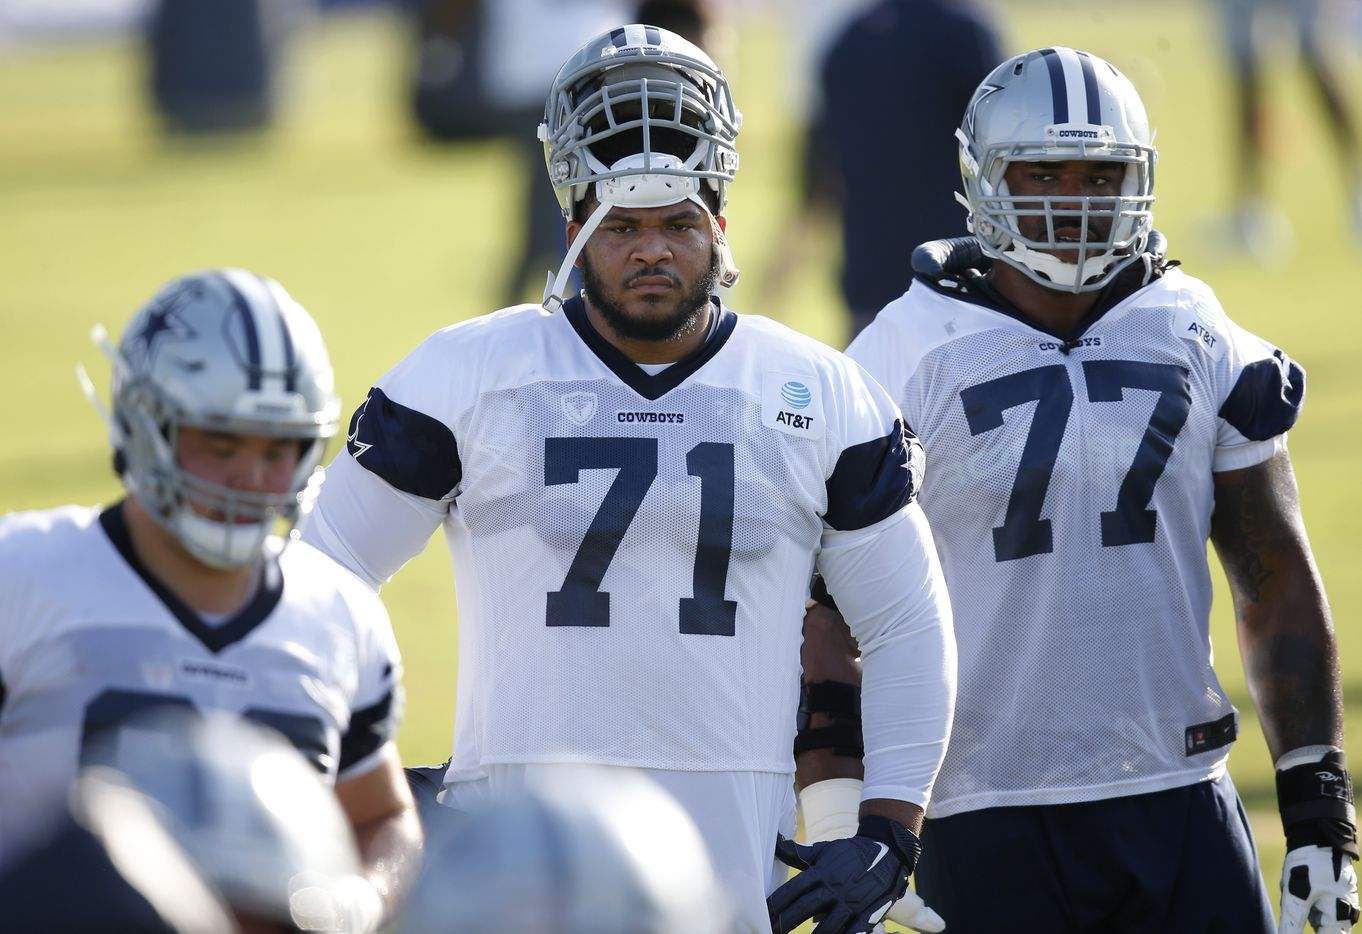 Dallas Cowboys offensive tackle La'el Collins (71) and Dallas Cowboys offensive tackle Tyron Smith (77) watch a drill in progress during the first day of training camp at Dallas Cowboys headquarters at The Star in Frisco, Texas on Friday, August 14, 2020. (Vernon Bryant/The Dallas Morning News)